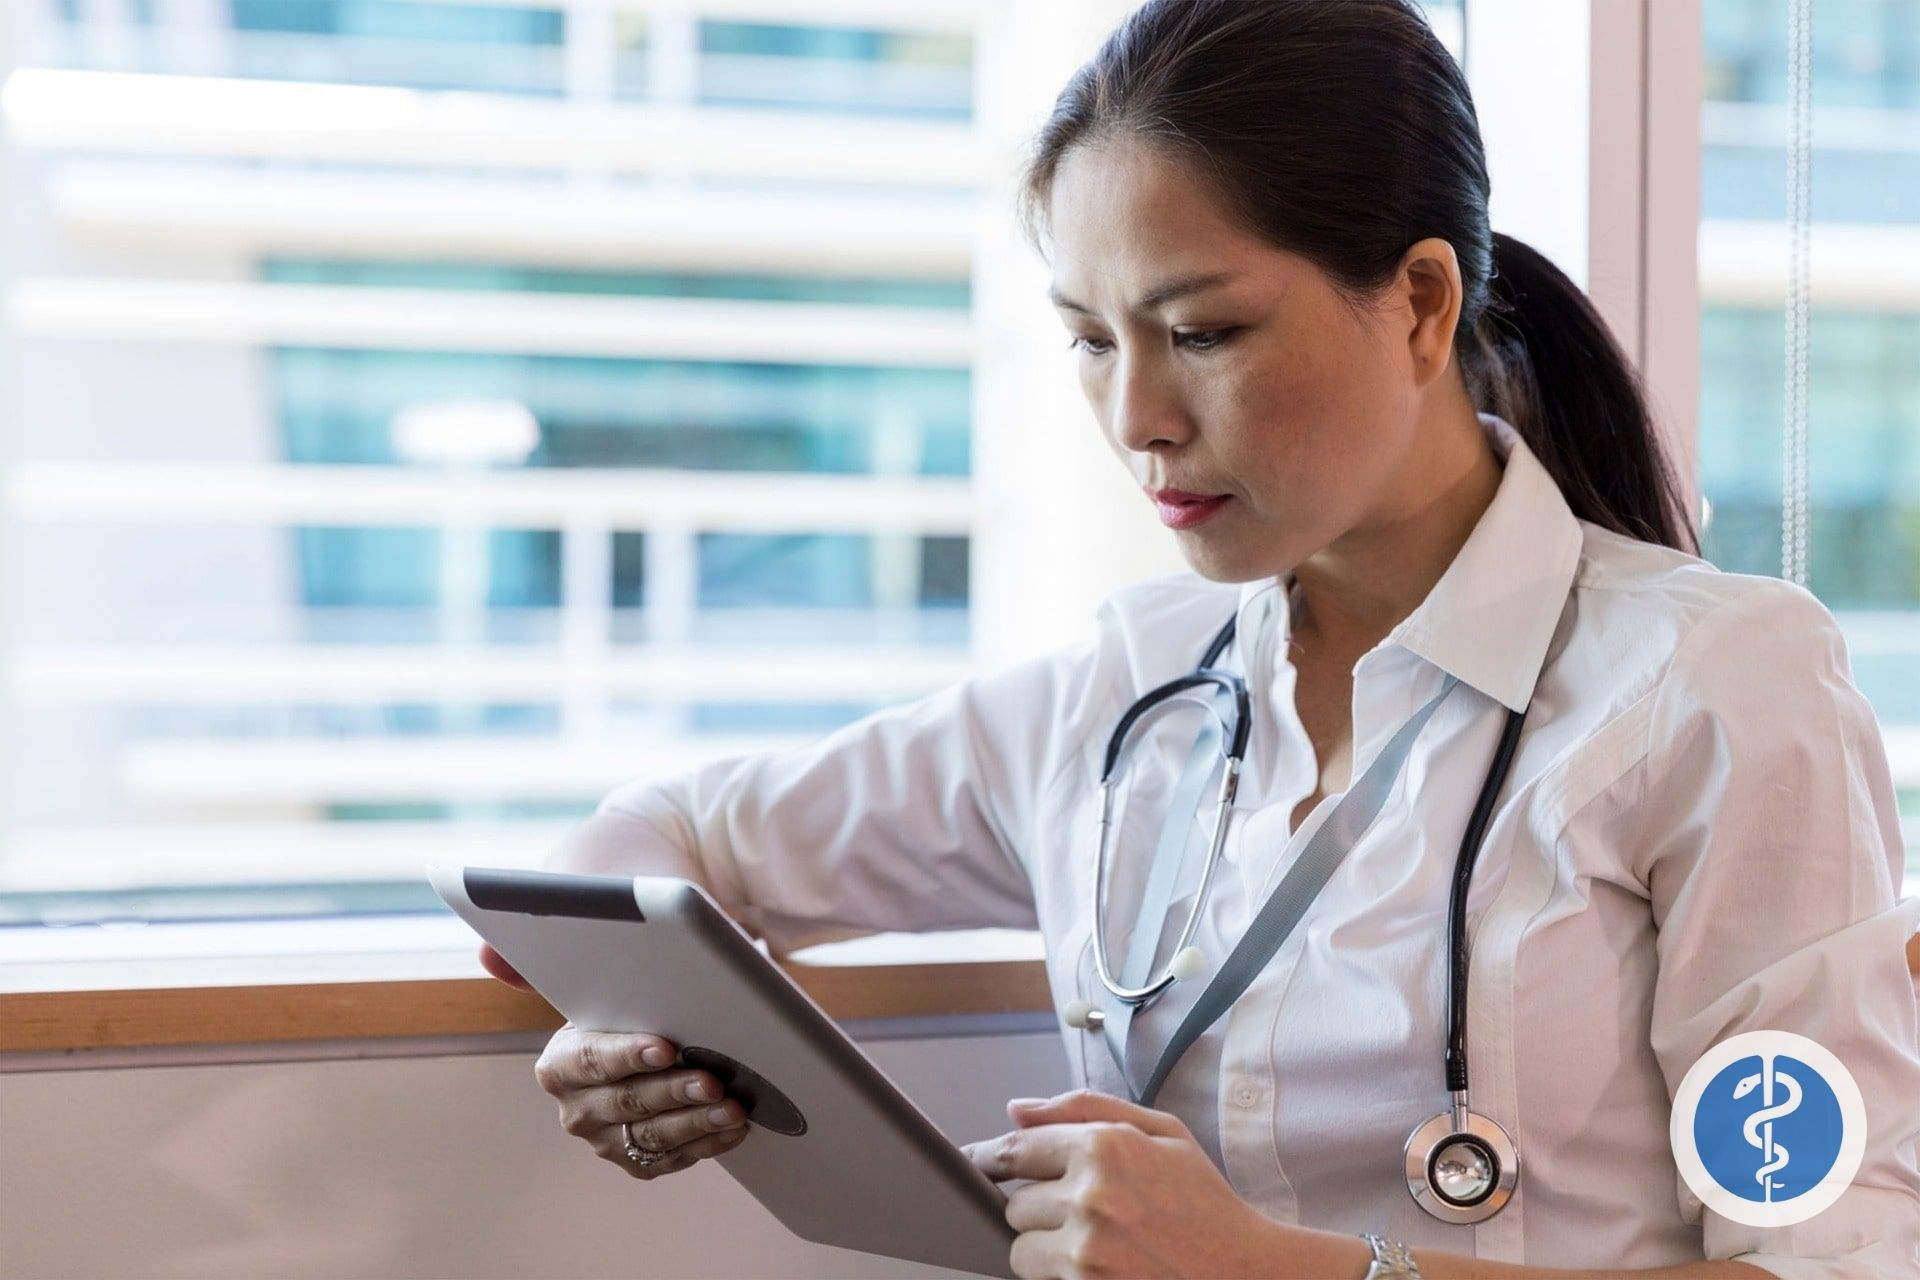 Doctor Video Consultations and Telemedicine